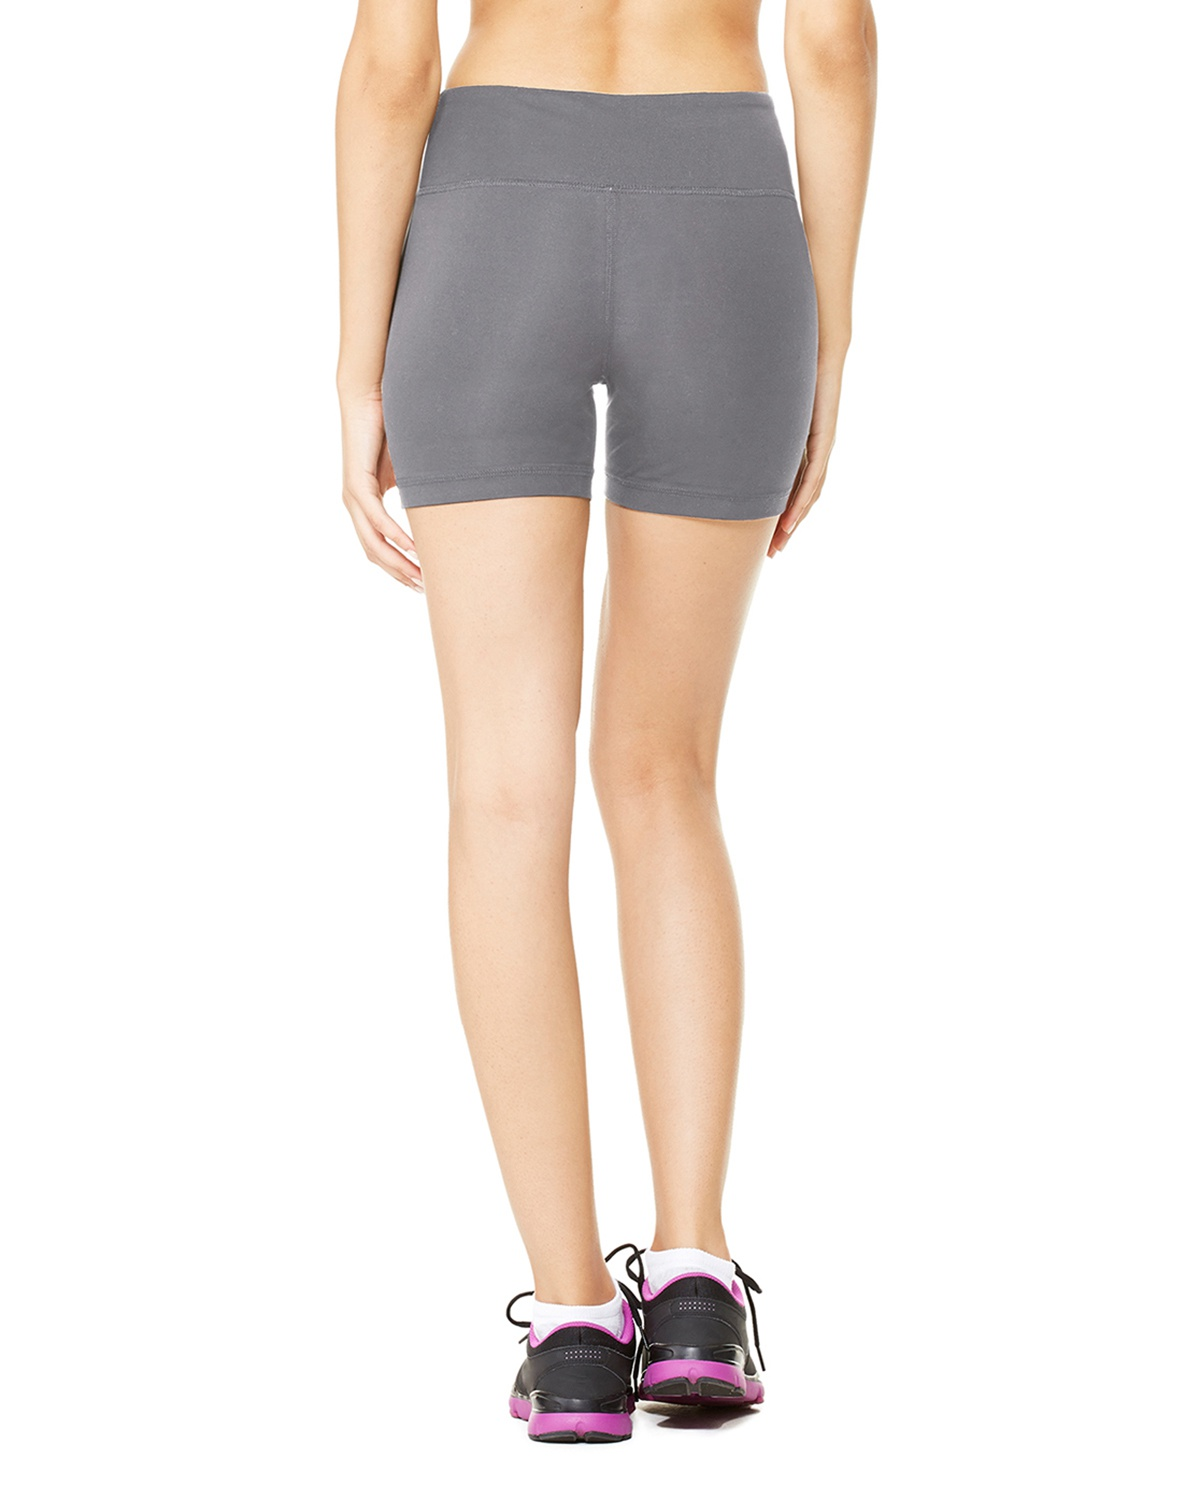 'All Sport W6507 Women's Fitted Shorts'